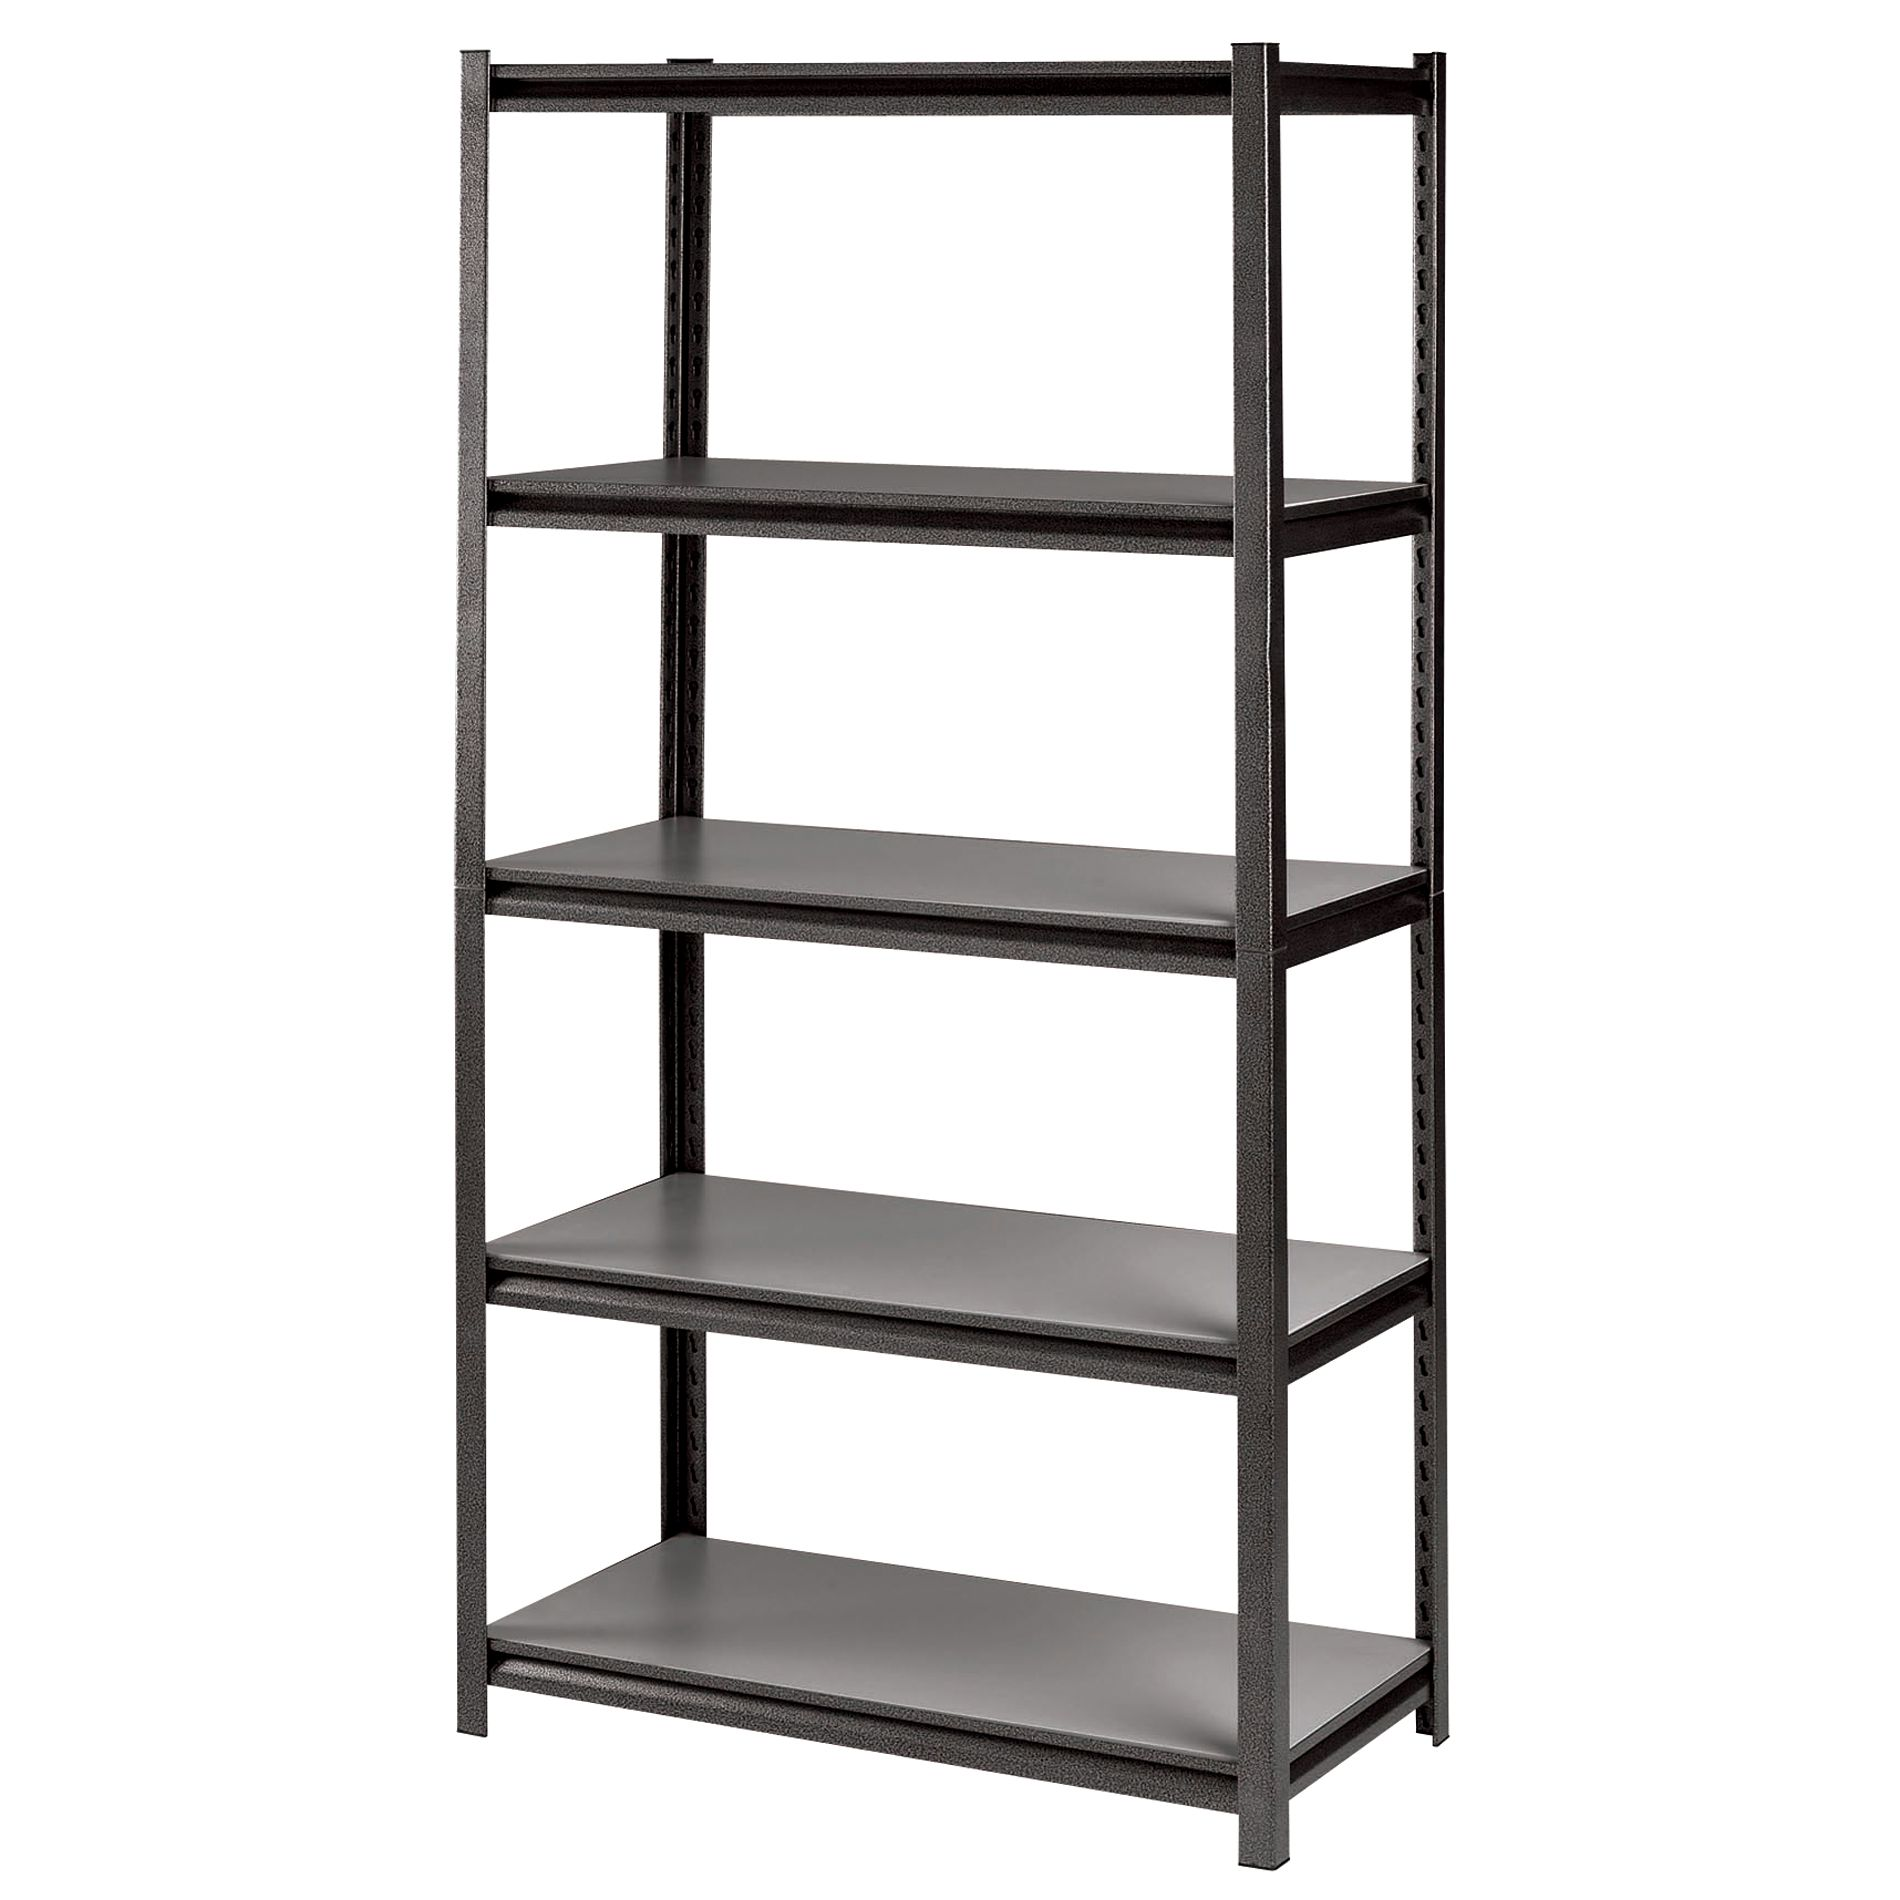 Gorilla Garage Racks Gorilla Rack 36 Quot Steel Storage Rack Shop Your Way